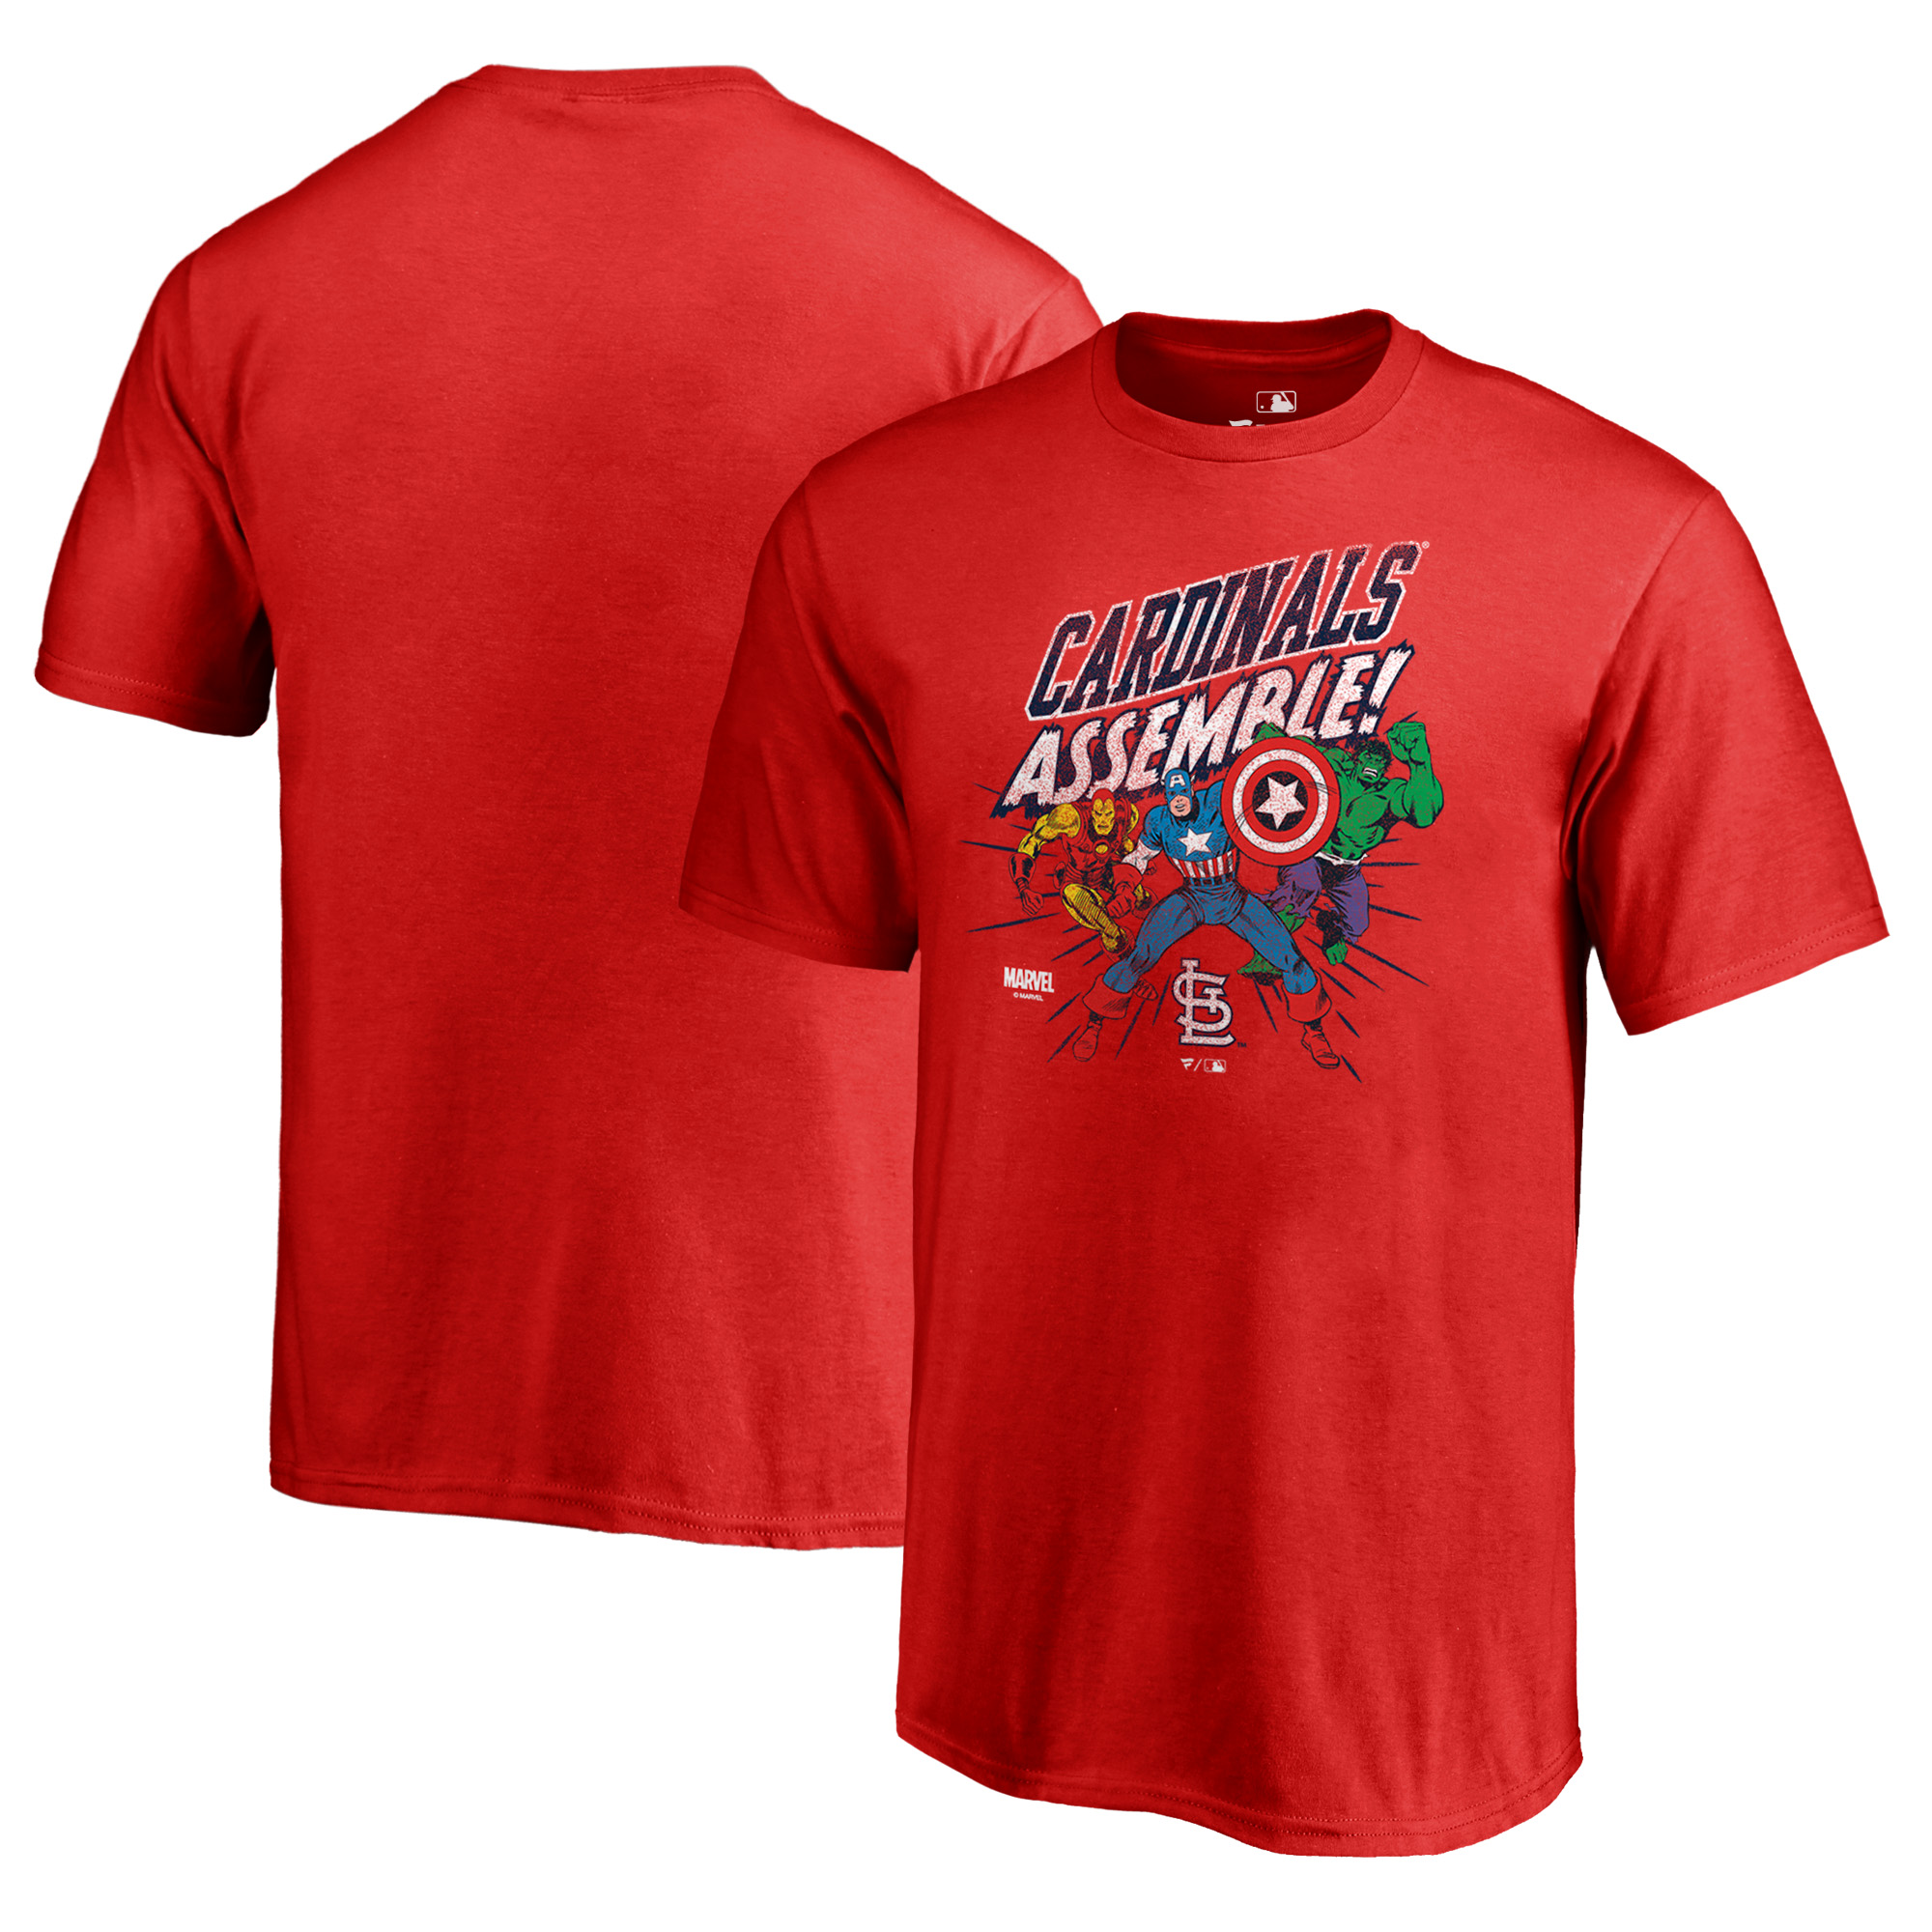 St. Louis Cardinals Fanatics Branded Youth Marvel Avengers Assemble T-Shirt - Red